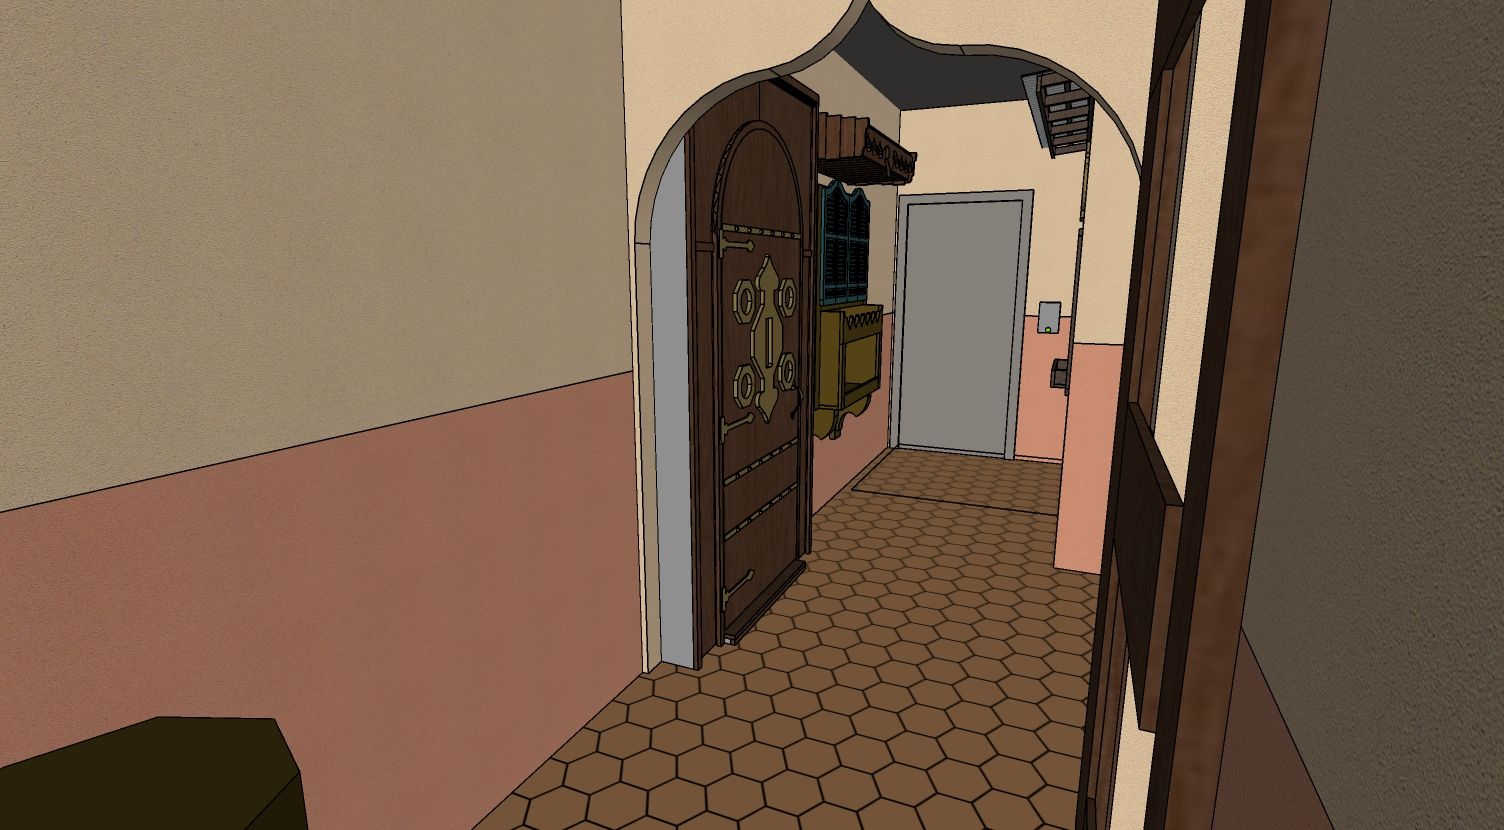 The Escape Game in 3D